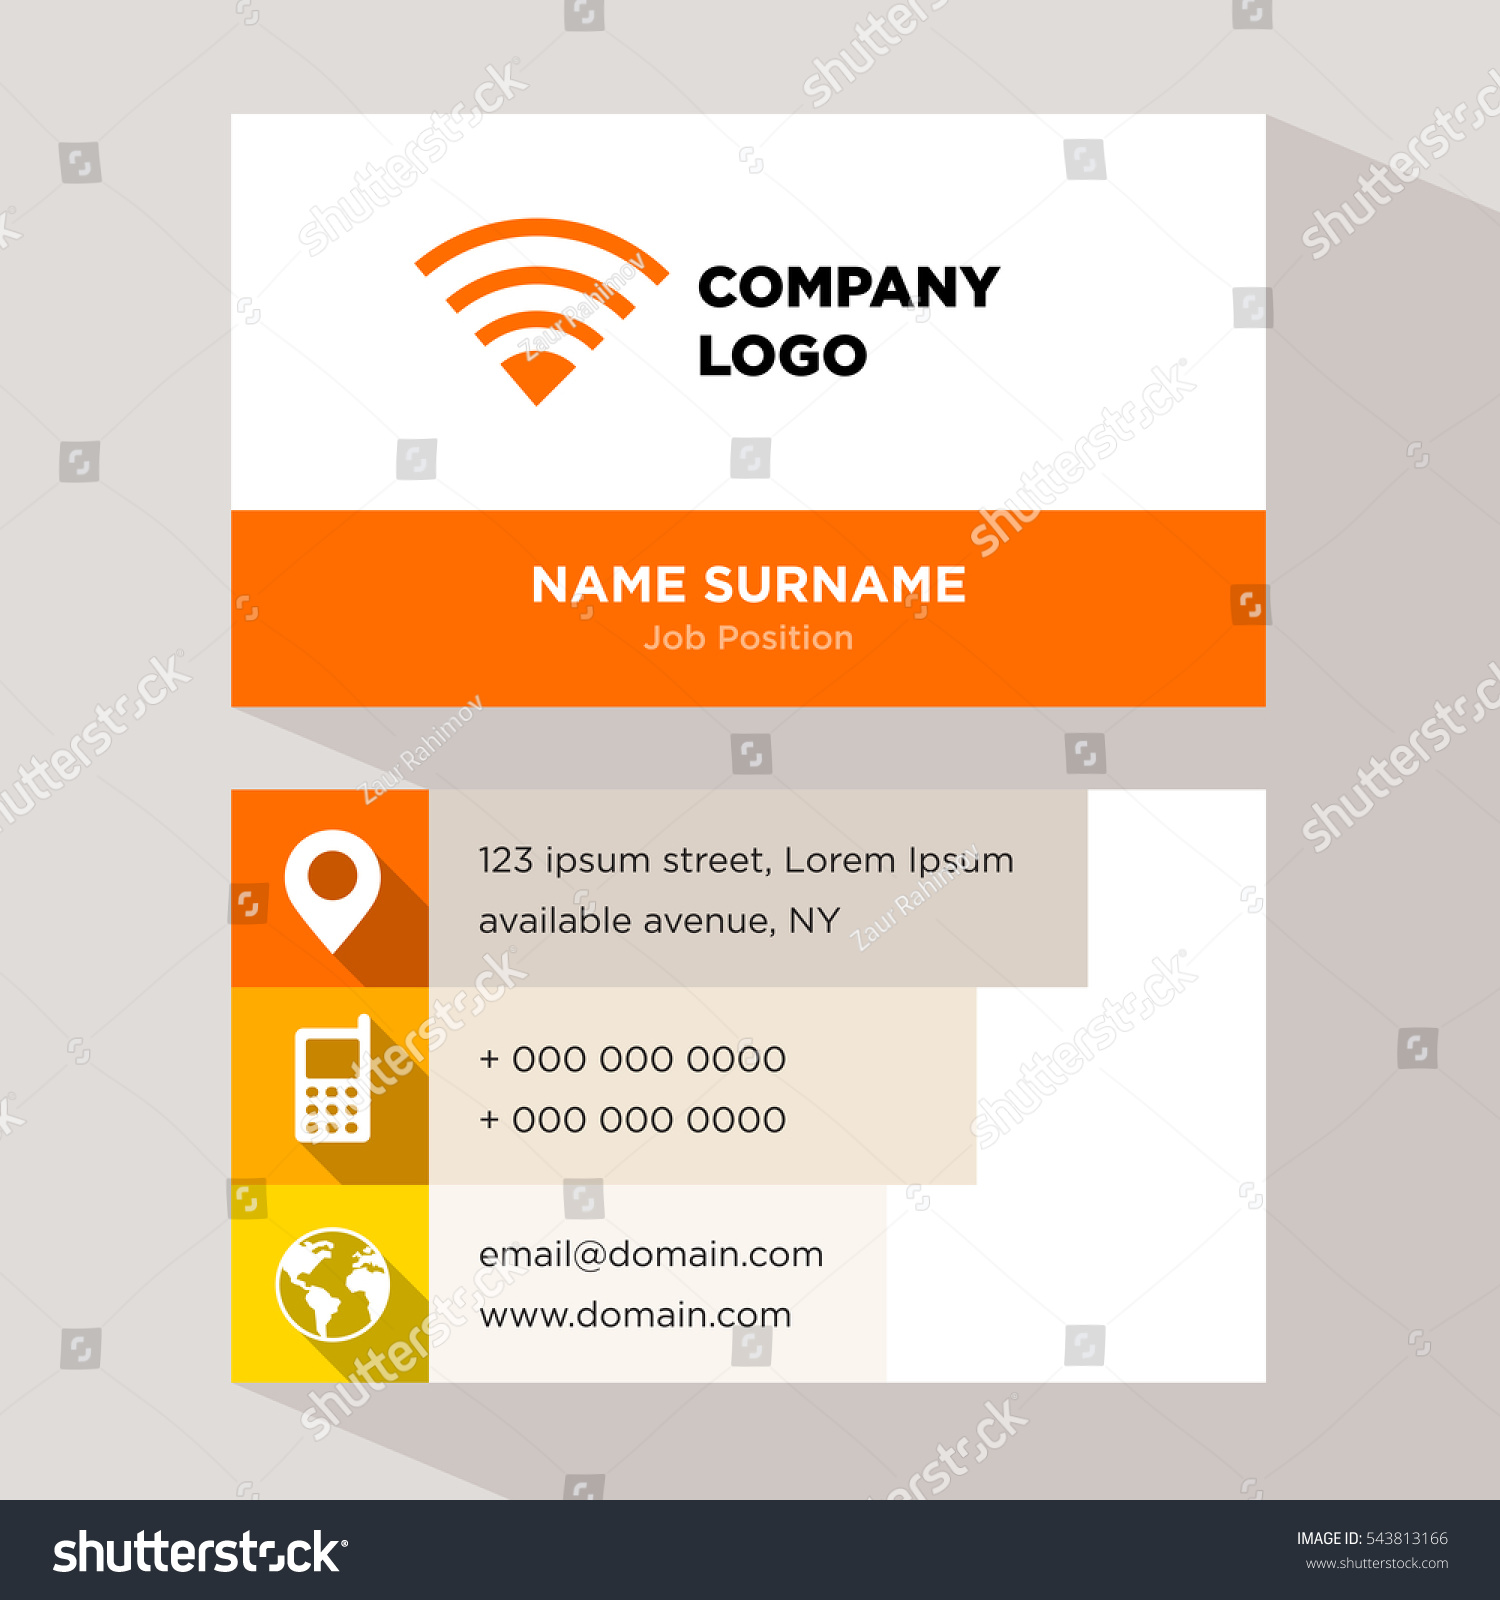 Template Personal Card Networking Services Company Stock